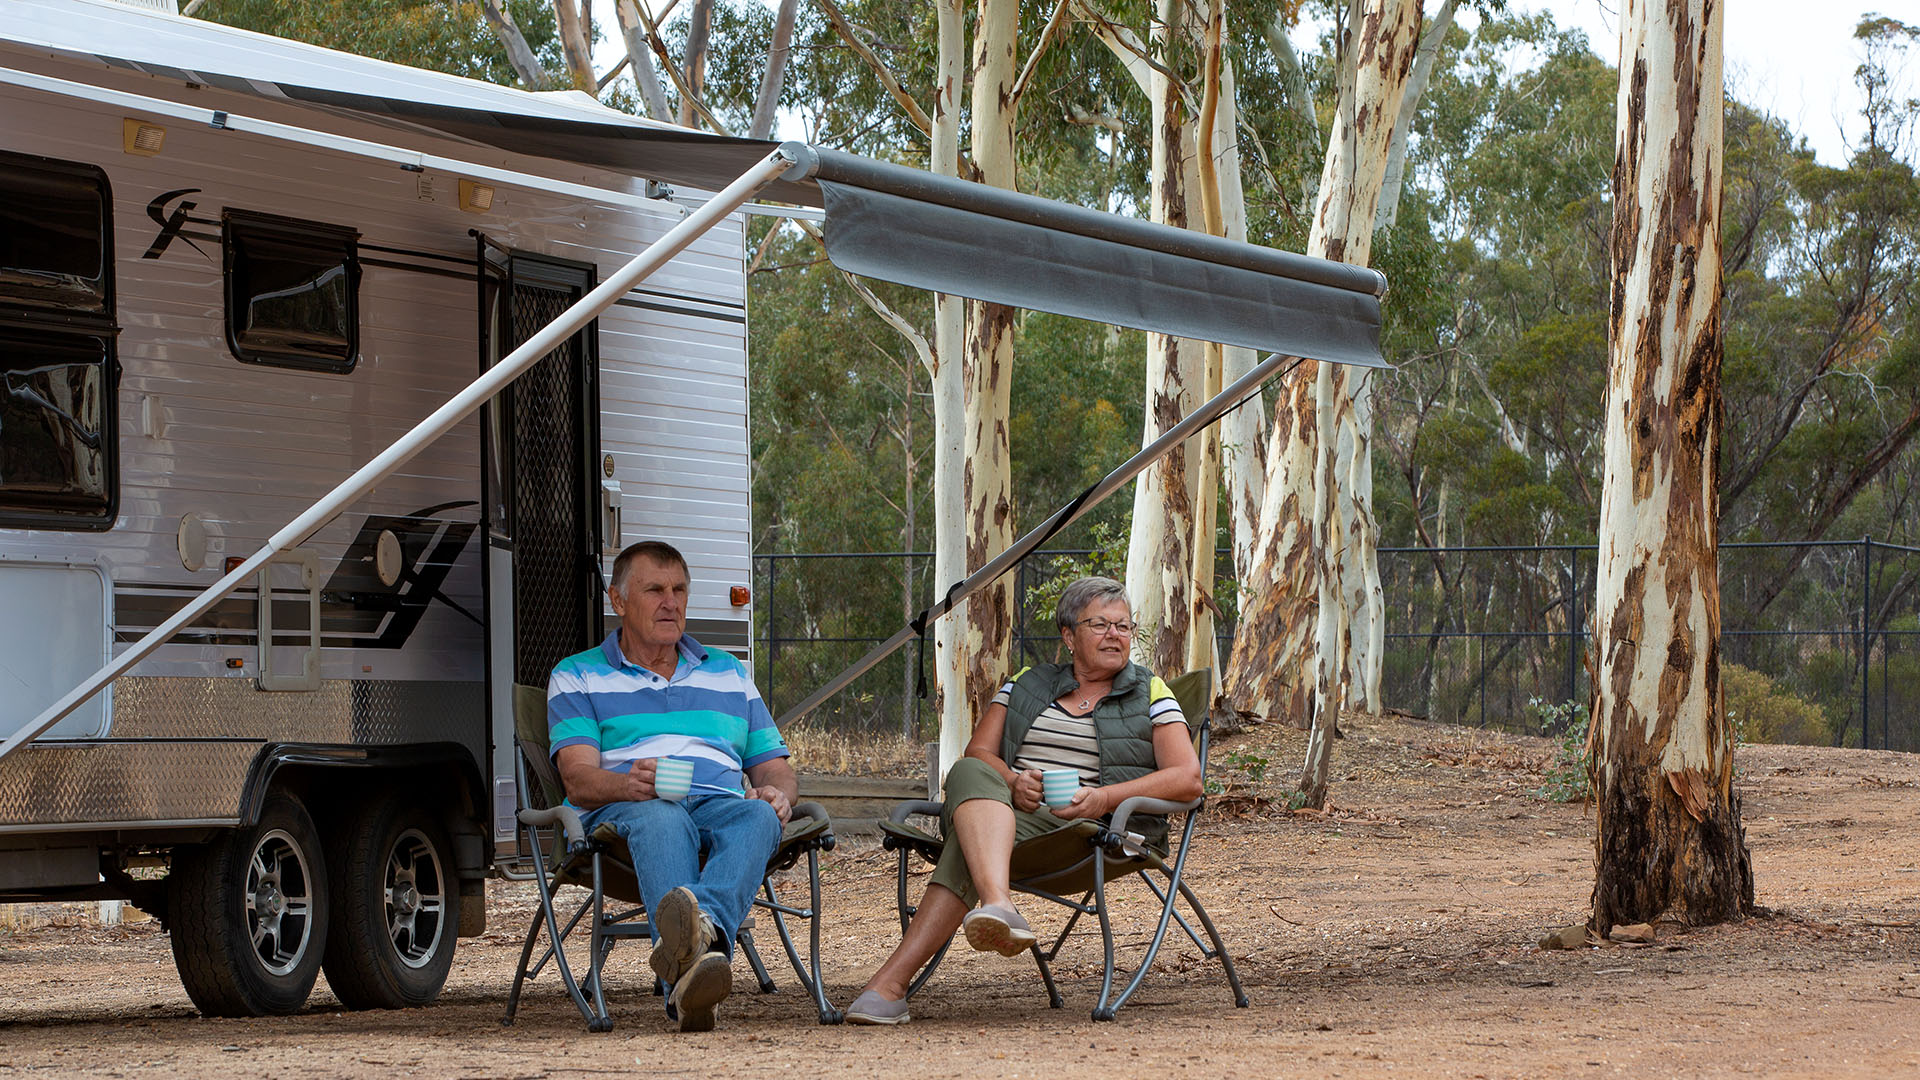 Peter Weaving_Tarnagulla Rec reserve camping RV friendly